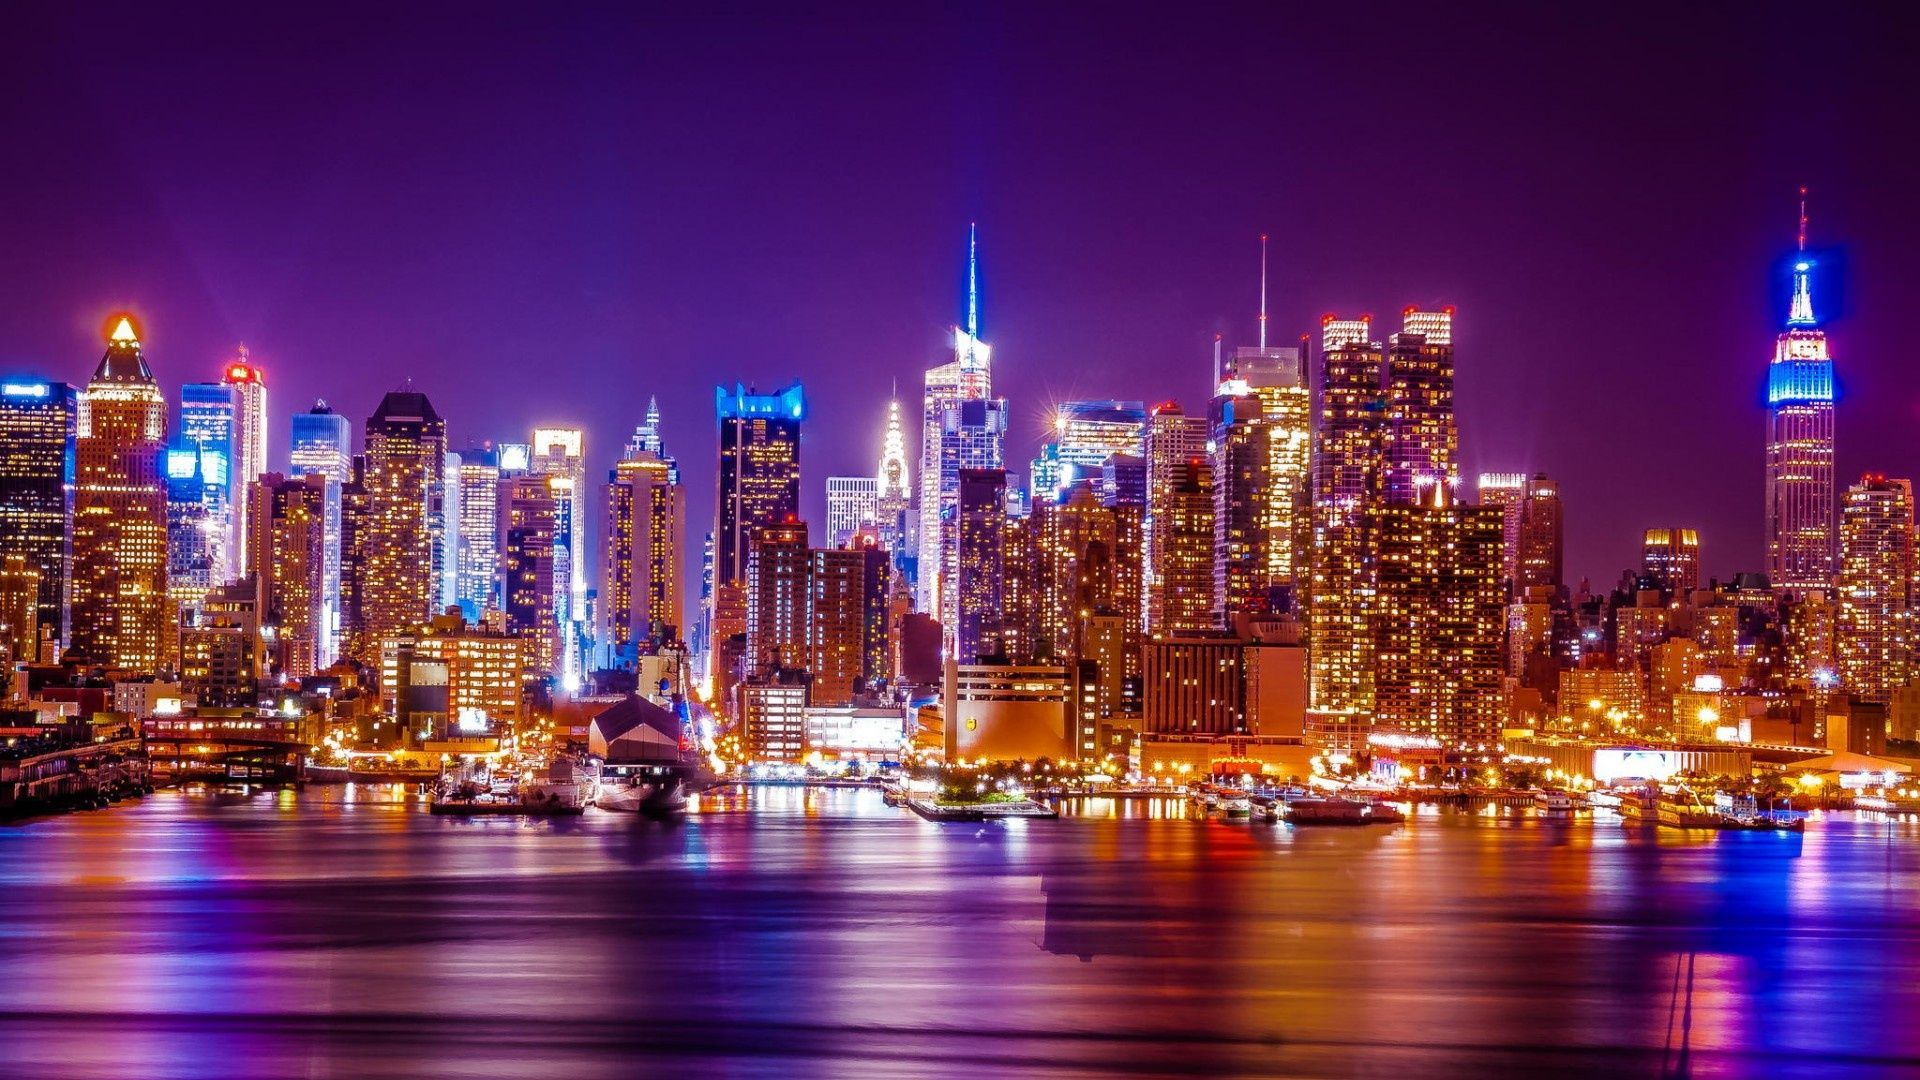 New York City Lights Wallpapers Top Free New York City Lights Backgrounds Wallpaperaccess